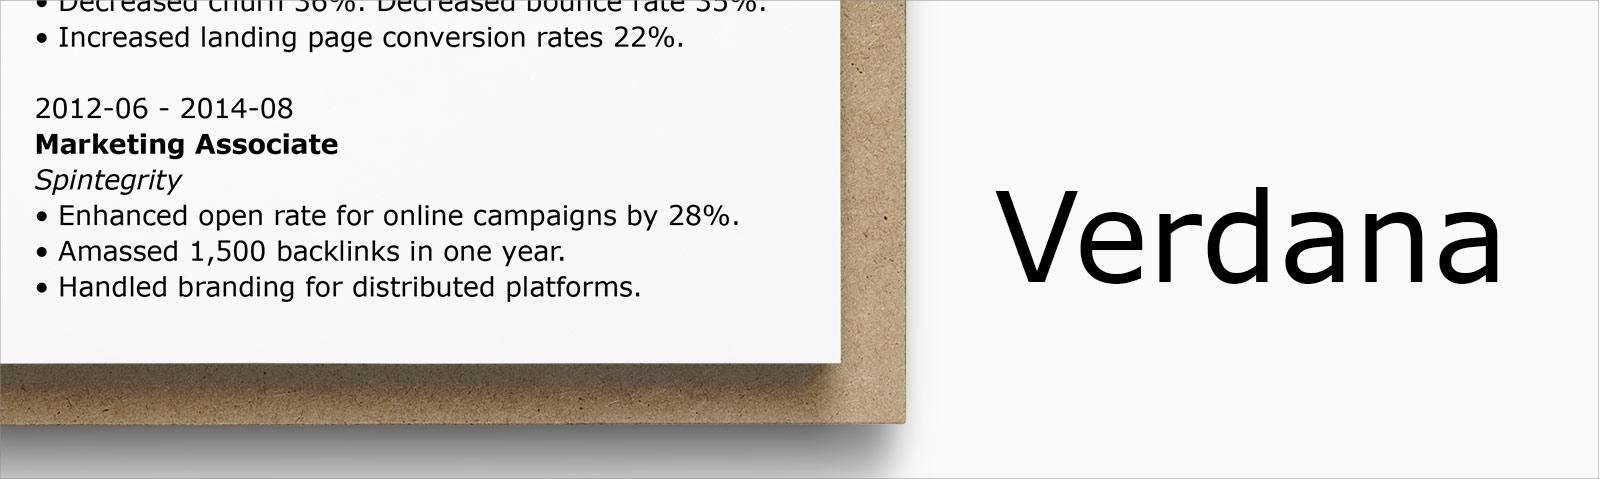 Best Font for a Resume: What Size & Typeface to Use? [15+ Pro Tips]